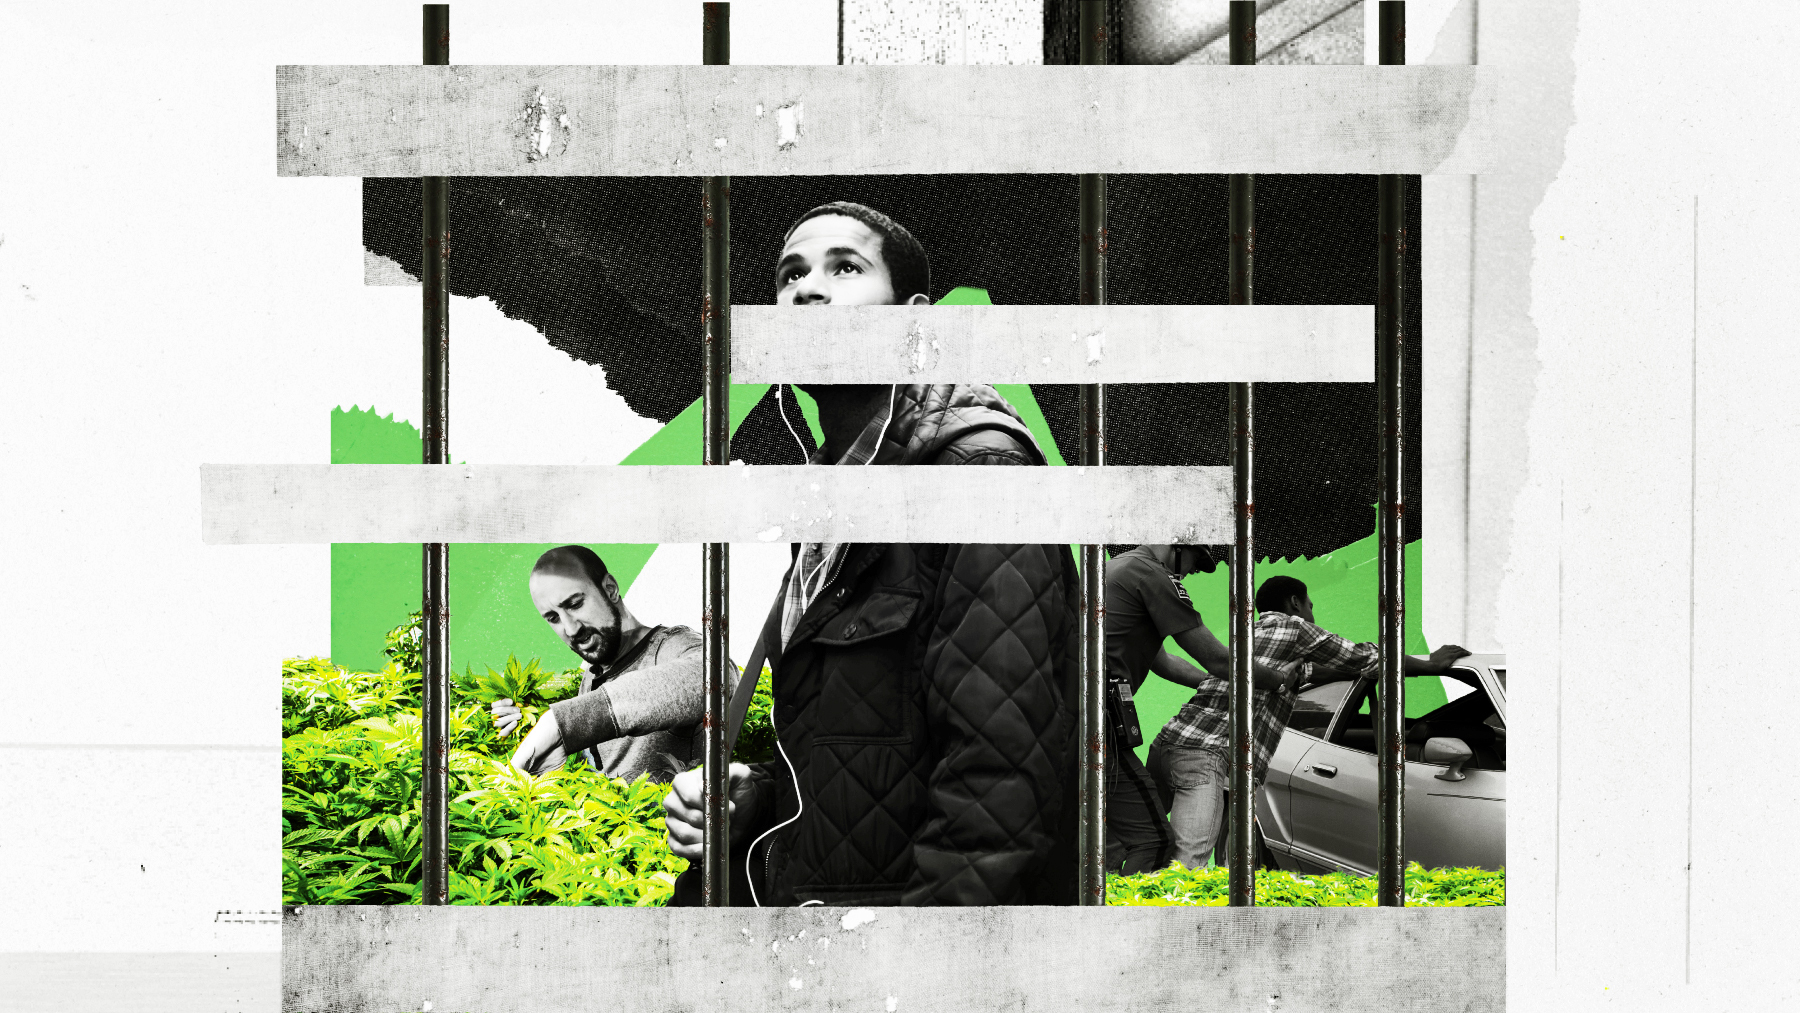 An illustration shows a black man behind bars while others tend to marijuana behind him.